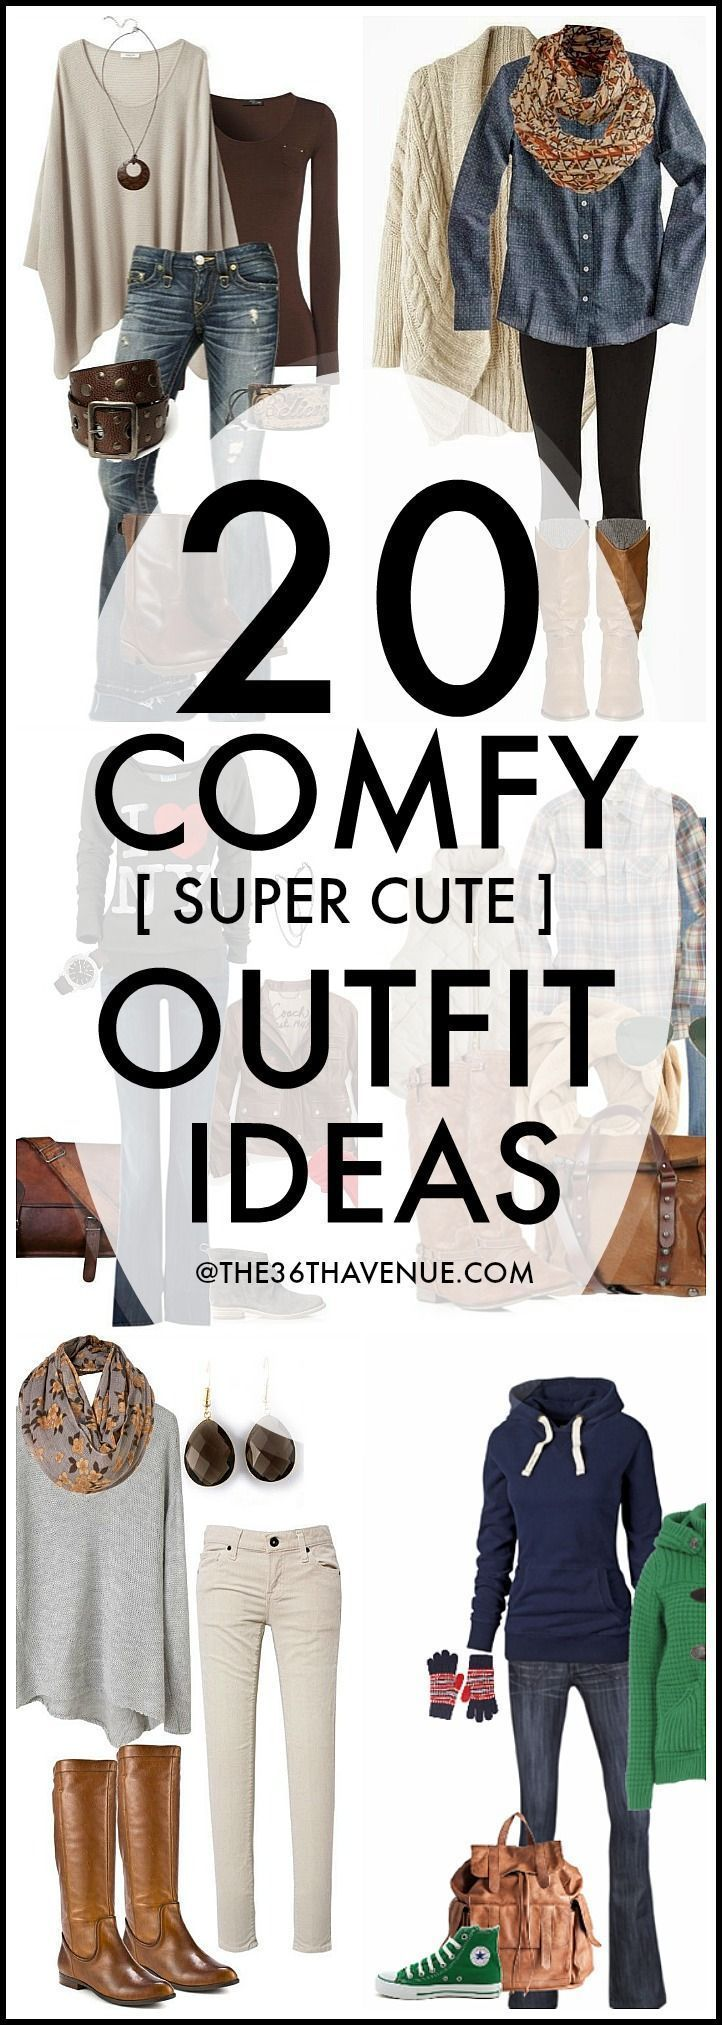 Style for over 35 ~ 20 Fashion Outfits that you can put together with cardigans, jeans, sweaters, and jackets that you may already have inside of your closet. These are super cute , easy, and comfortable fall outfit ideas!